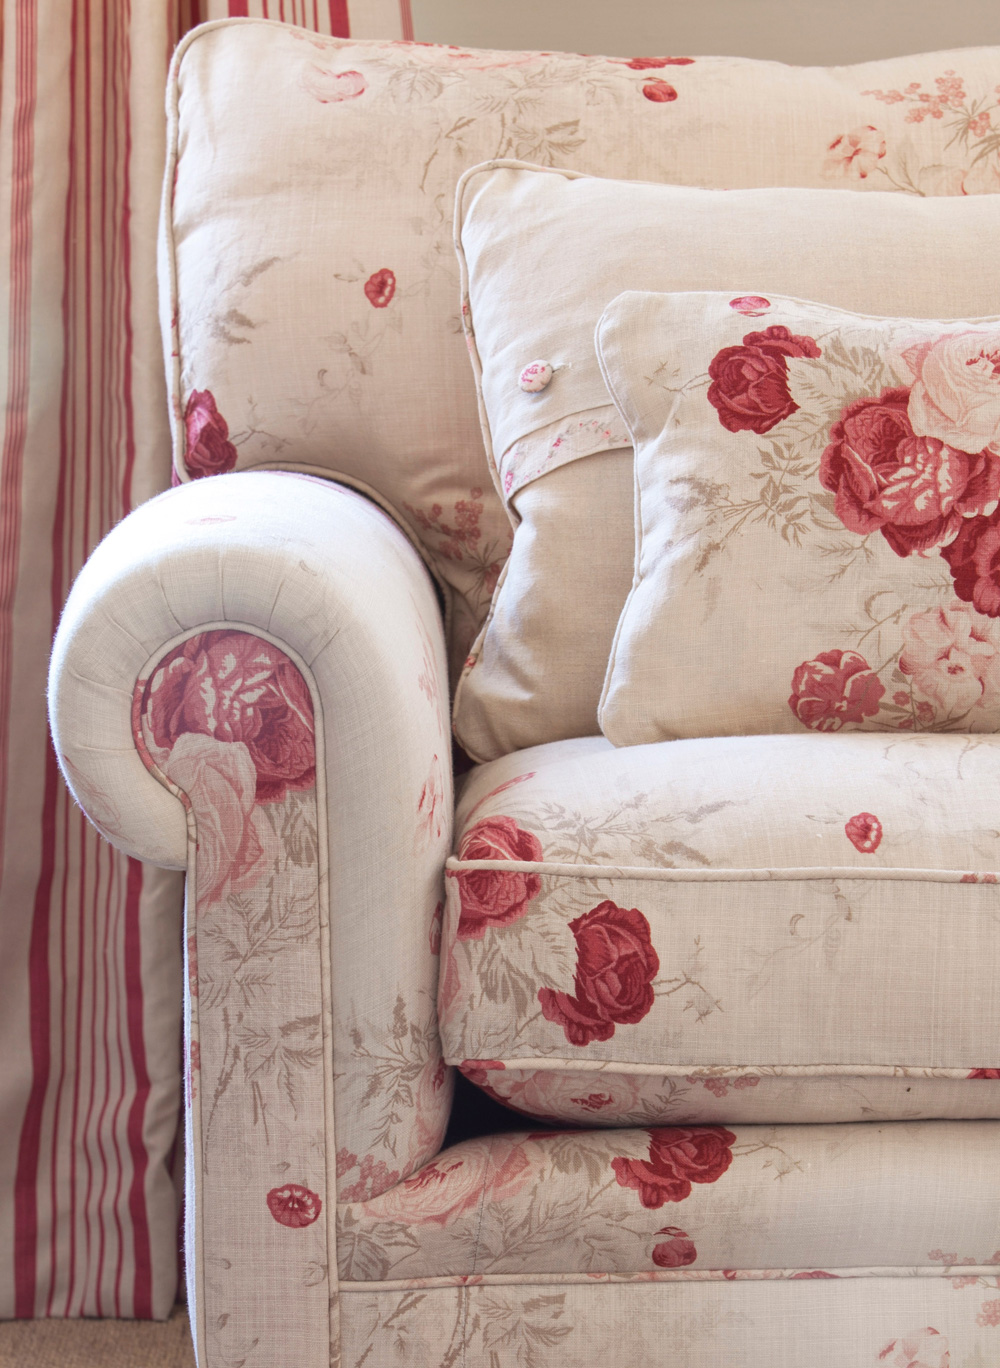 Roses-Sofa-Close-Up